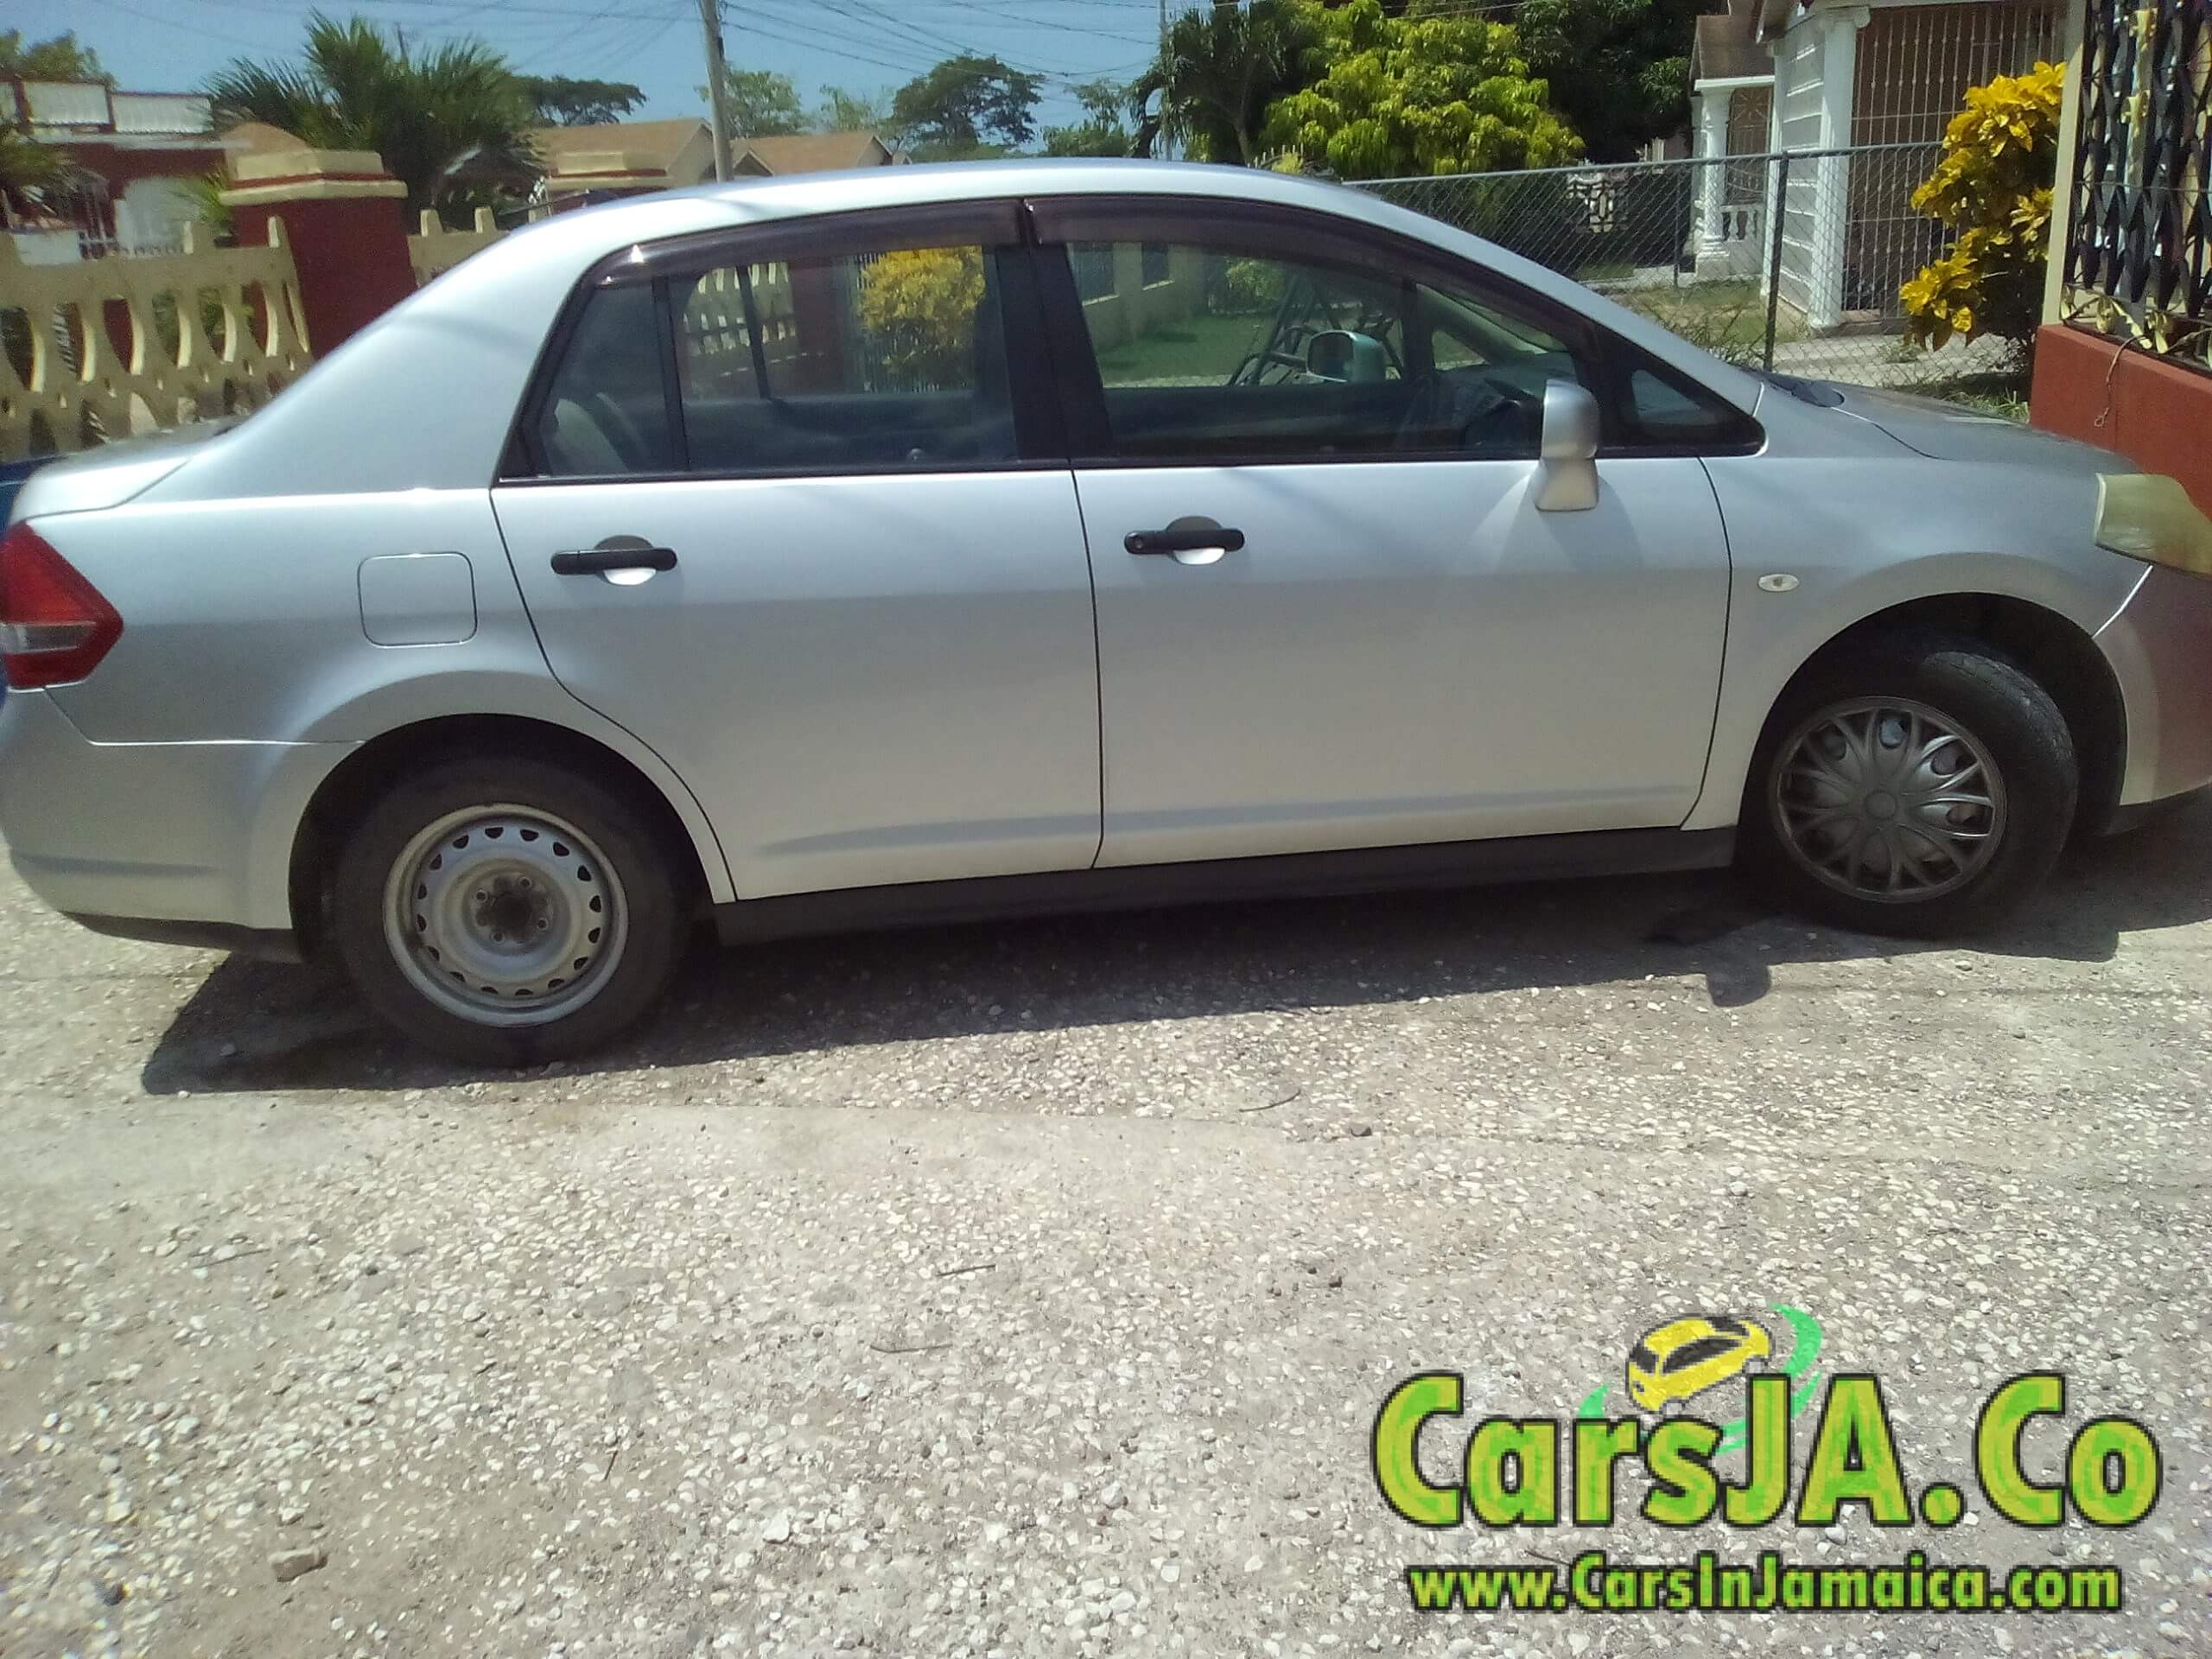 Cars For Sale In Jamaica With Financing: Nissan Tiida On Sale In Jamaica